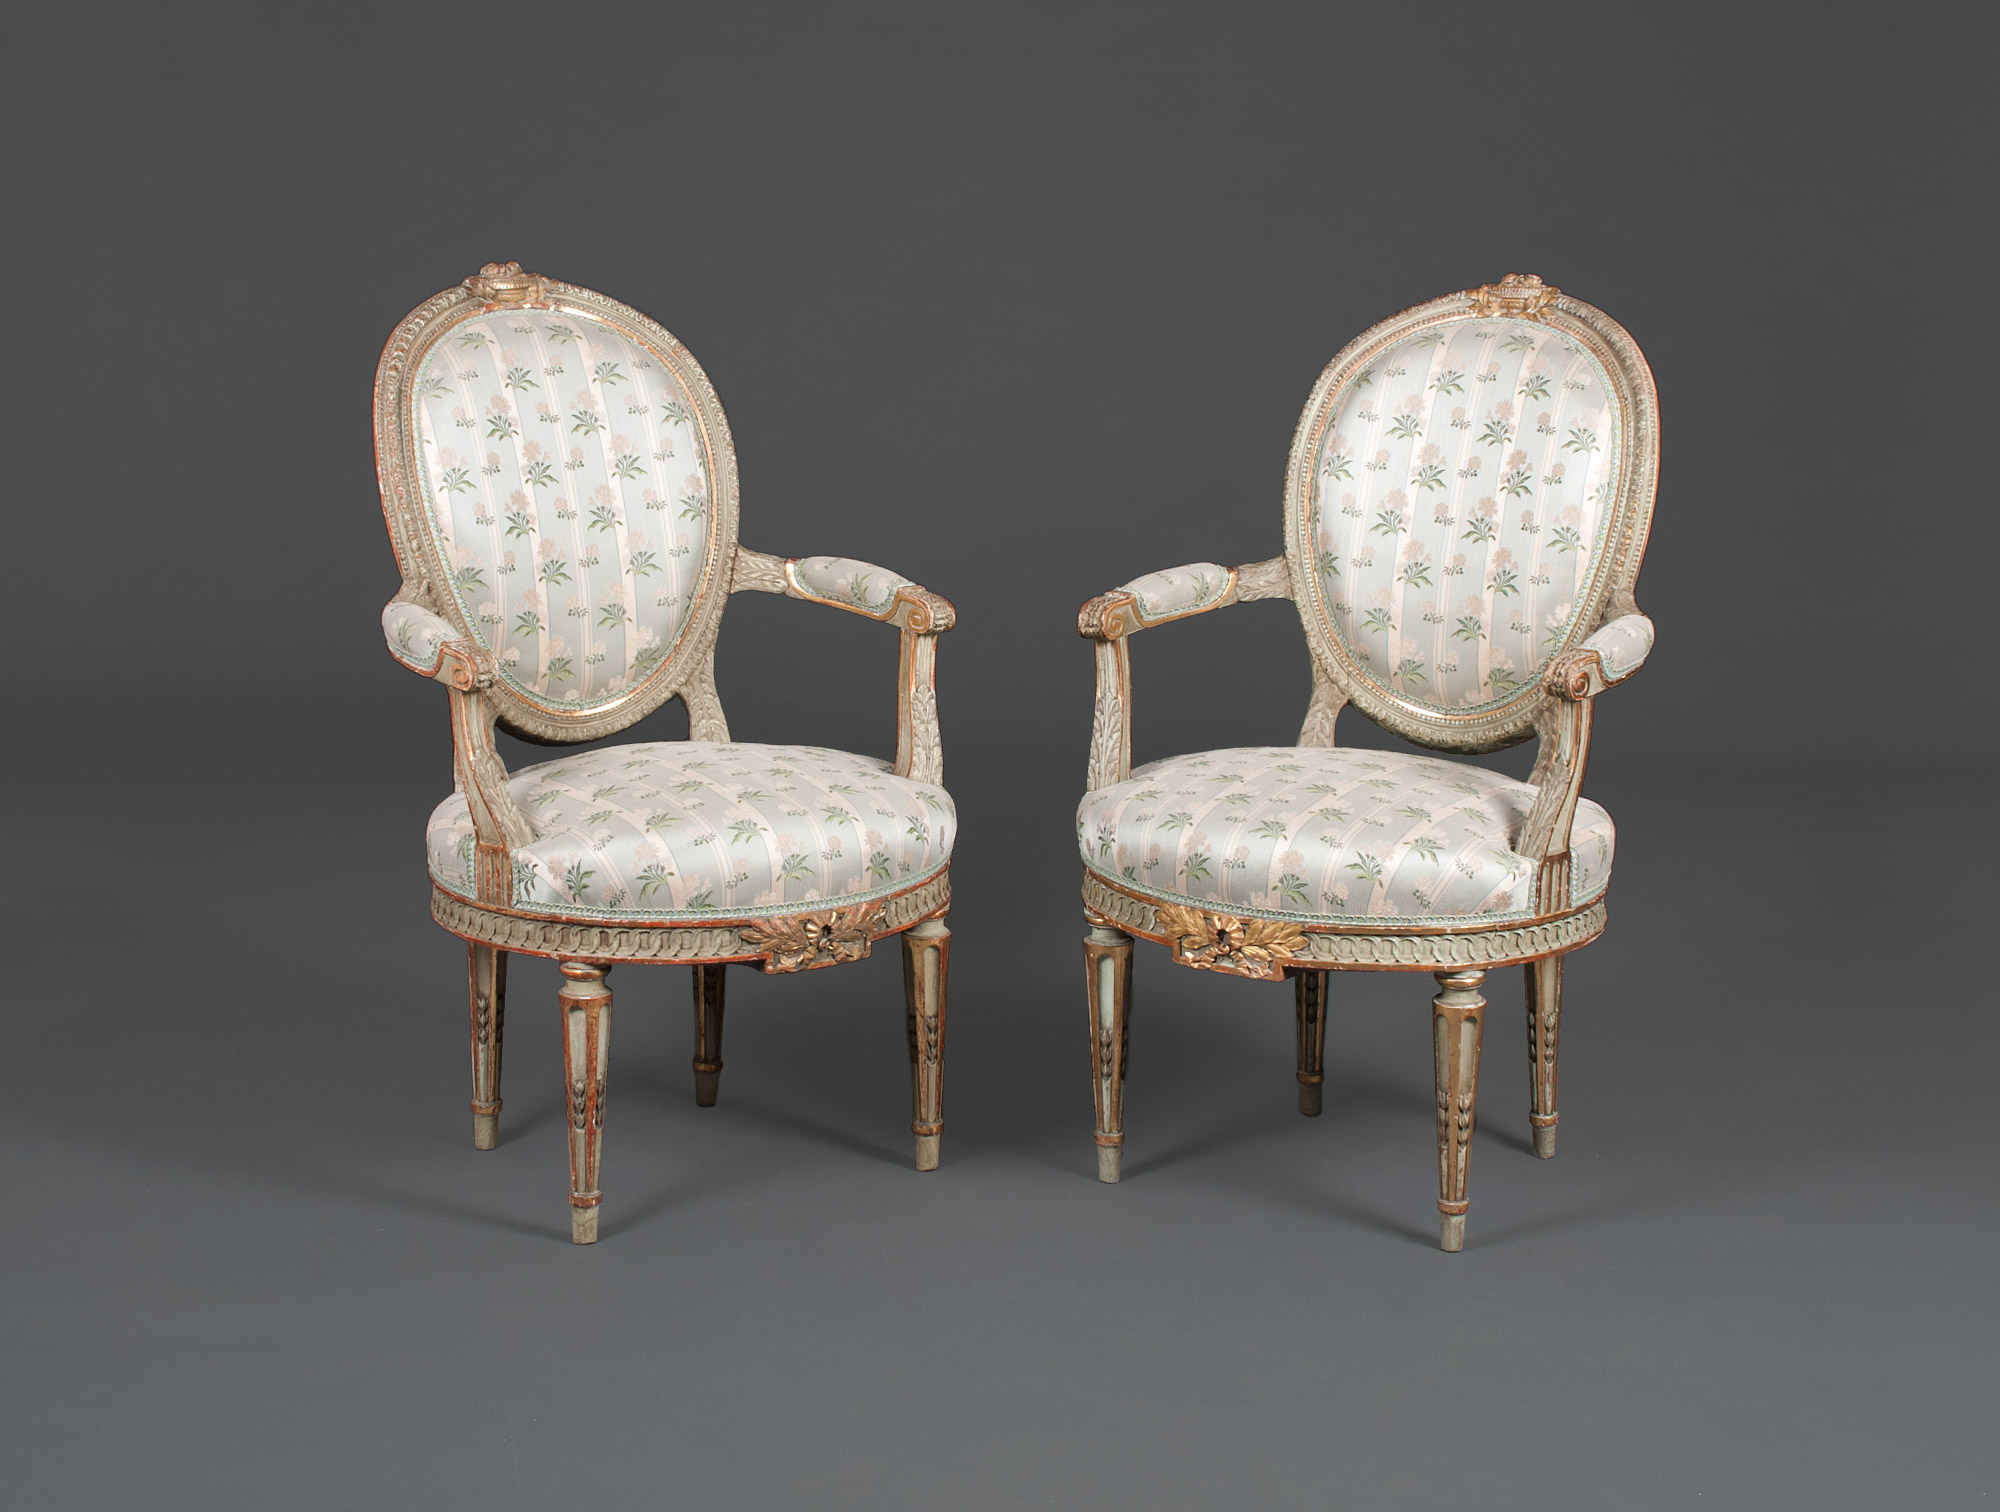 Salon louis xvi soubrier louer si ges salon xviiie for Salon louis 16